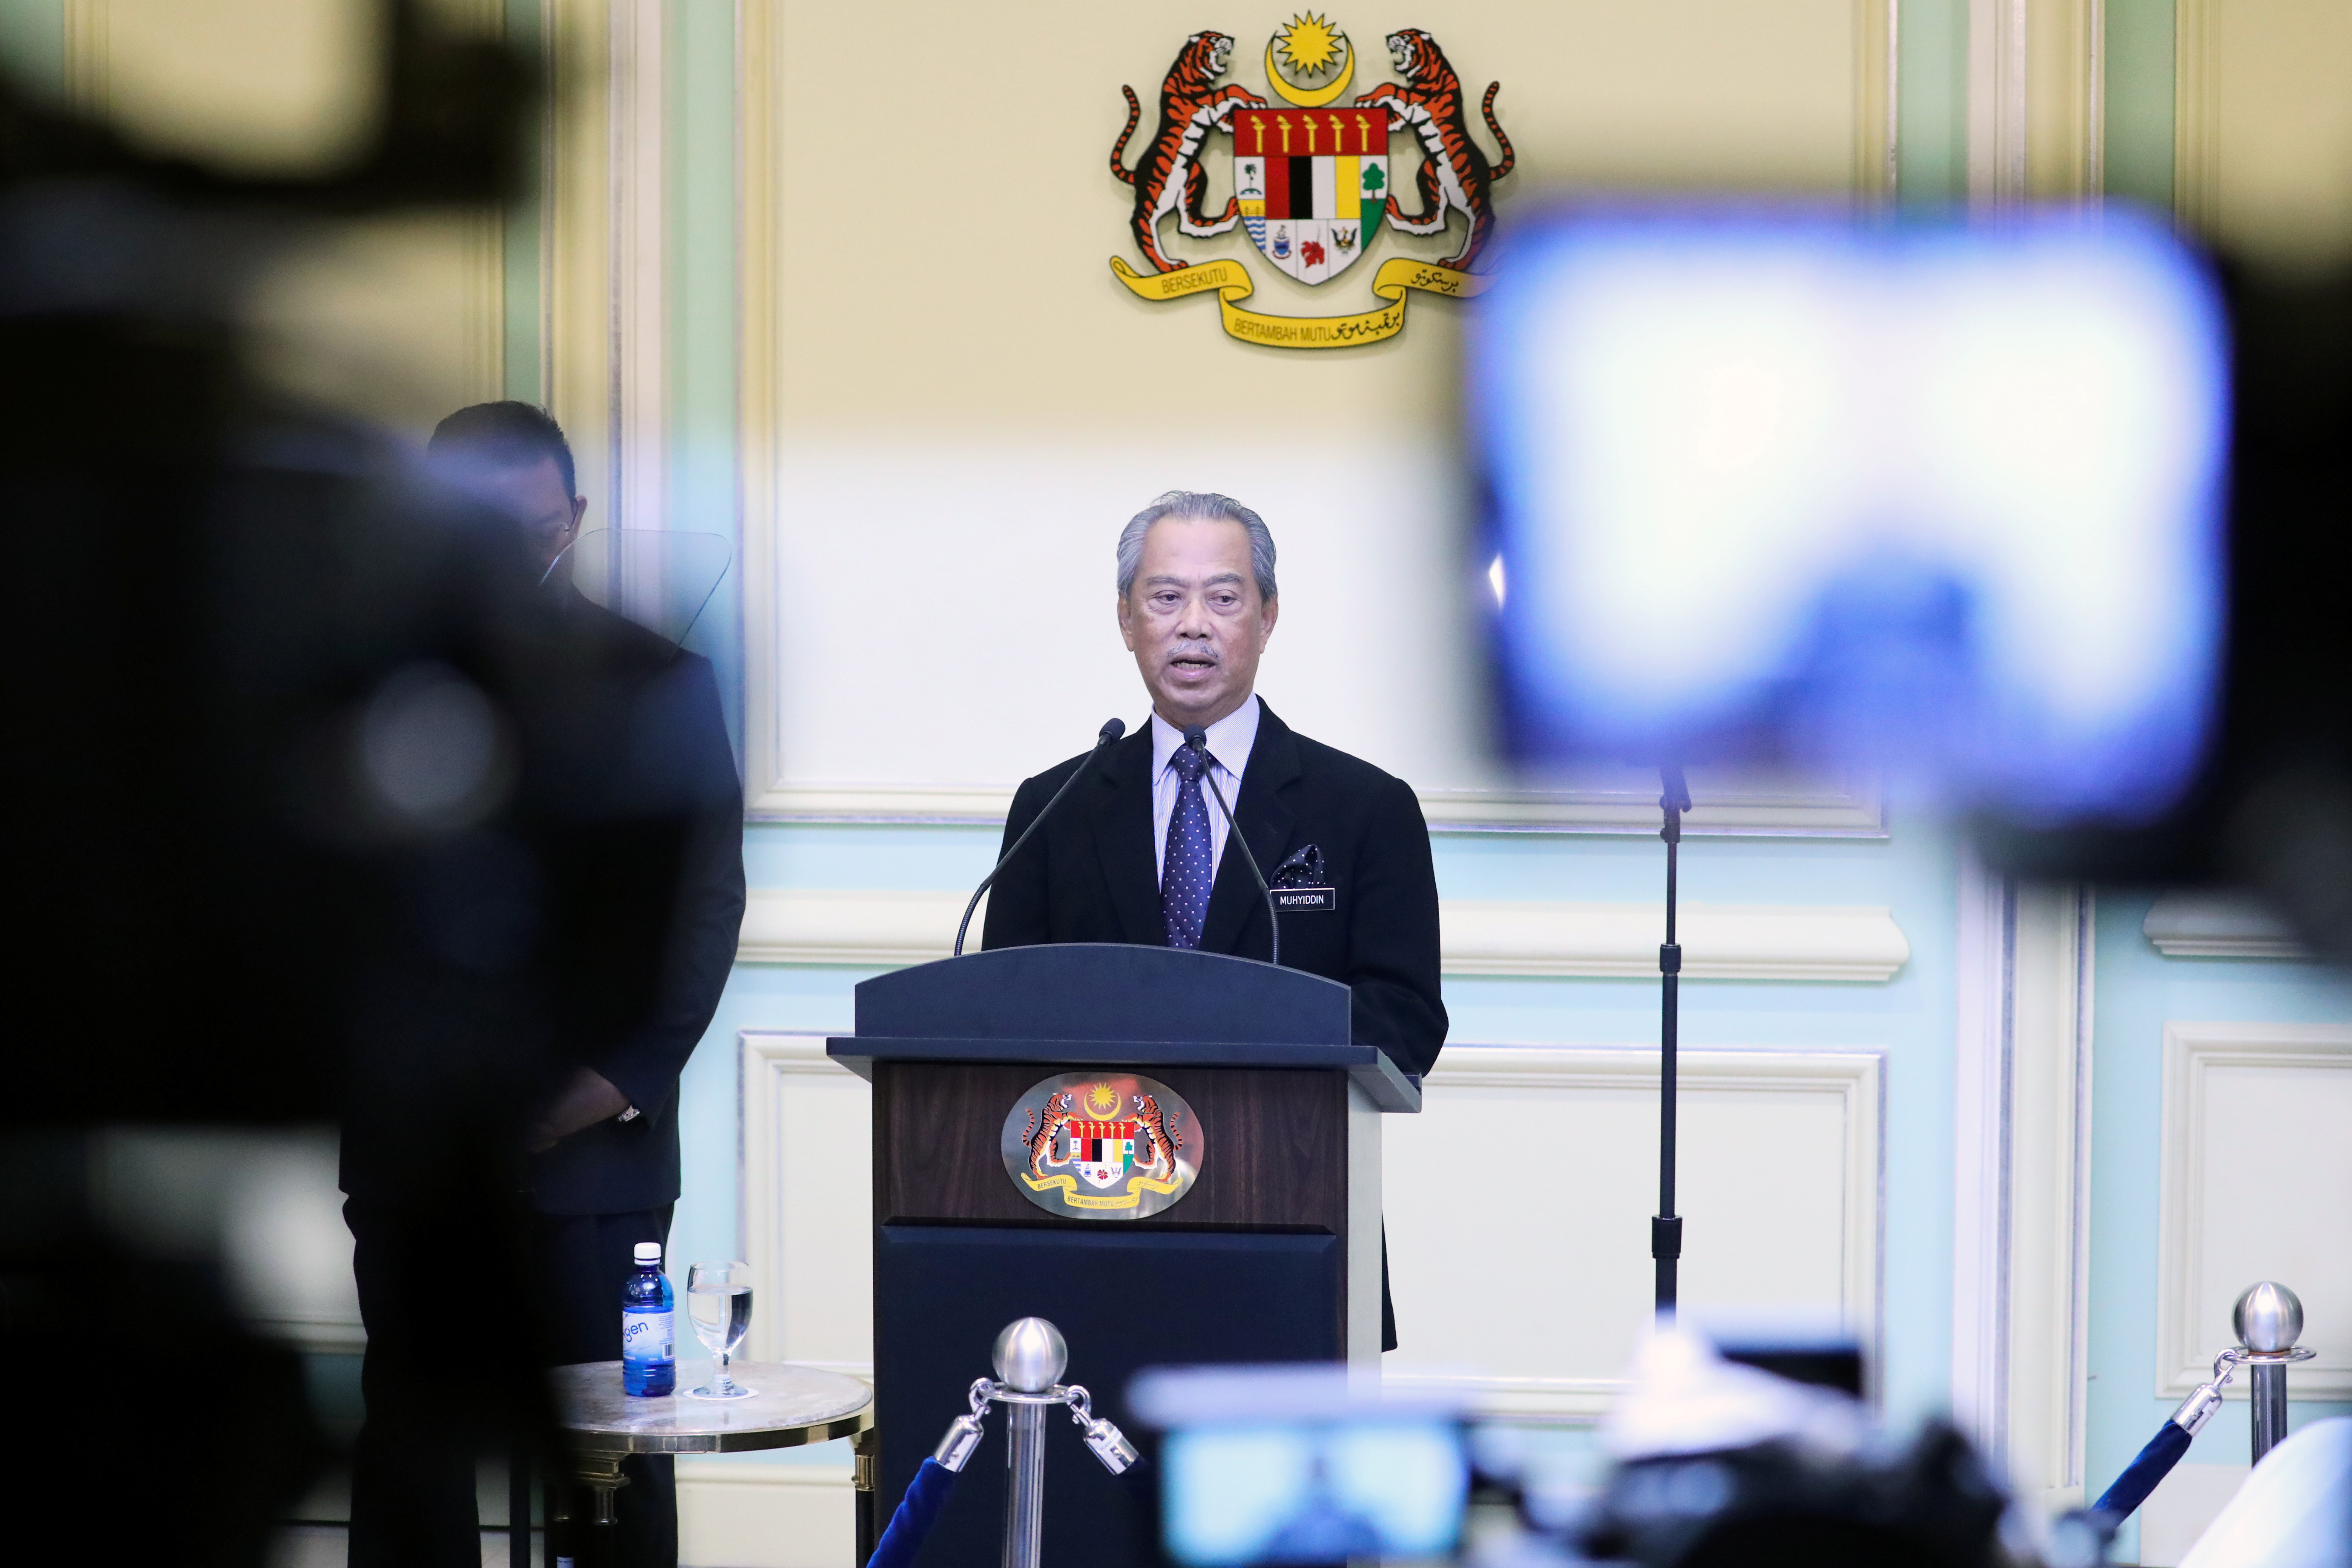 Malaysia's Prime Minister Muhyiddin Yassin speaks during his cabinet announcement in Putrajaya, Malaysia March 9, 2020. REUTERS/Lim Huey Teng